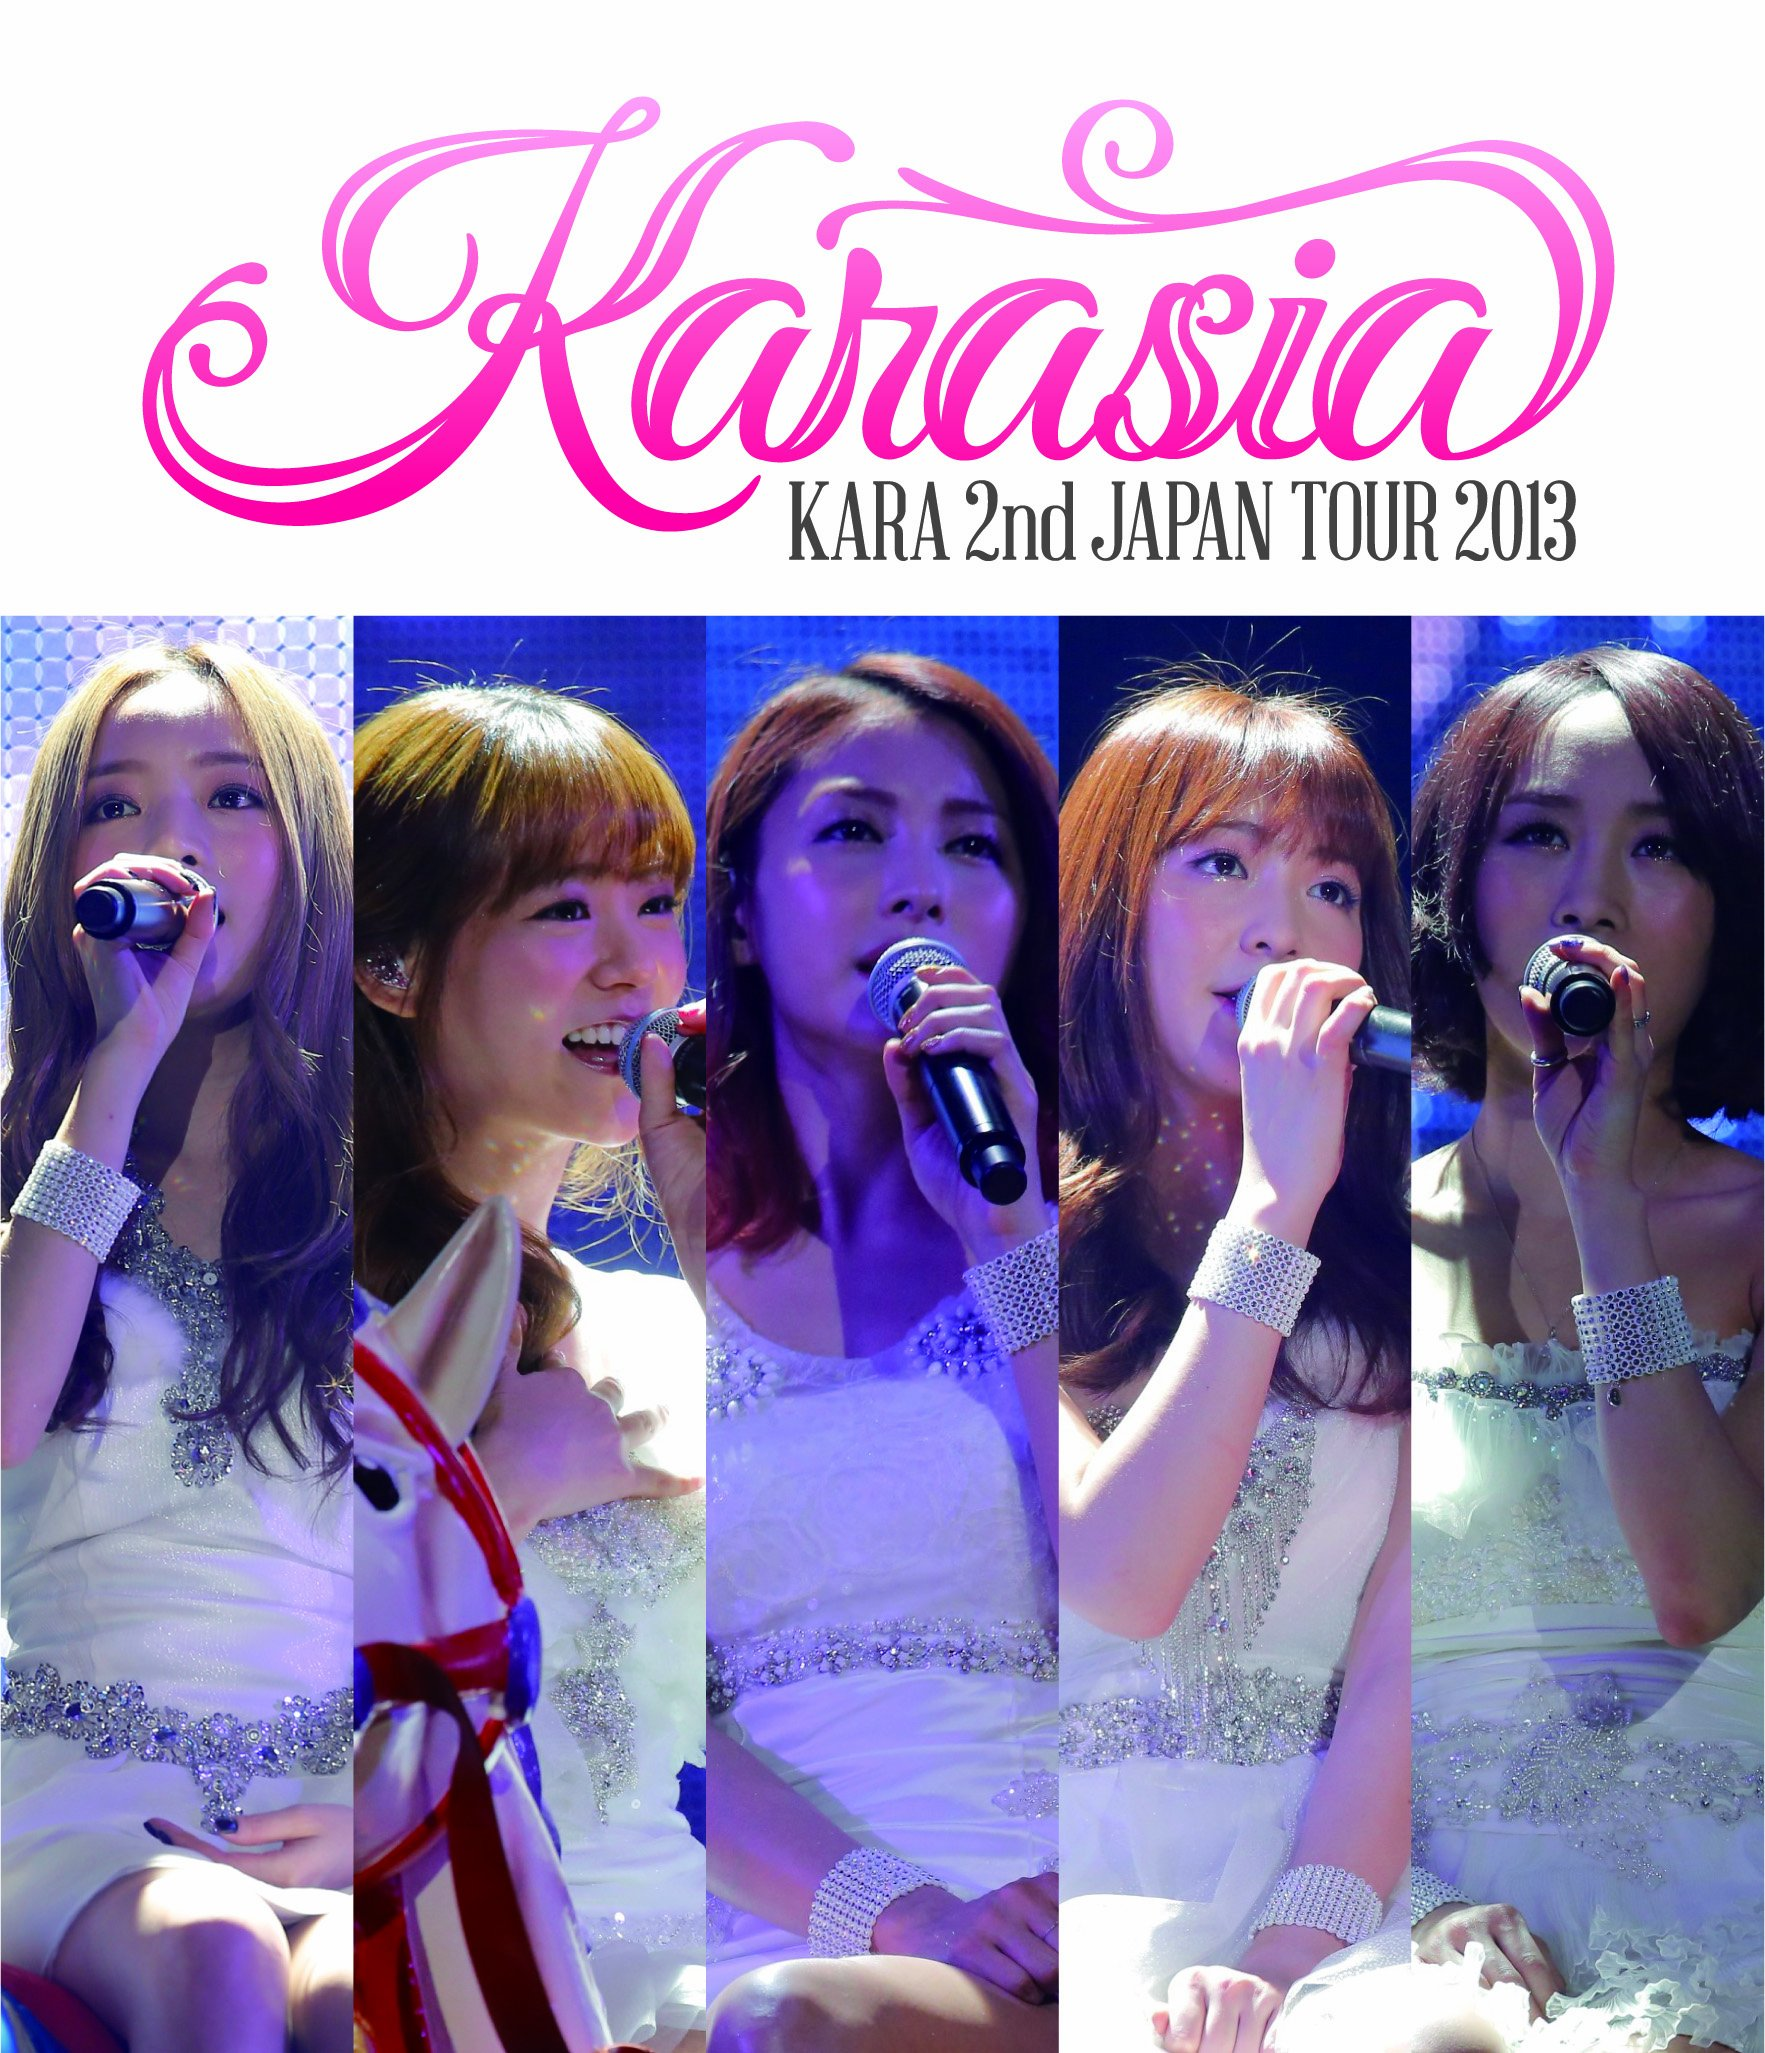 KARA Karasia 2nd Japan Tour 2013 BluRay 1080p Flac 2.0 x265 10bit